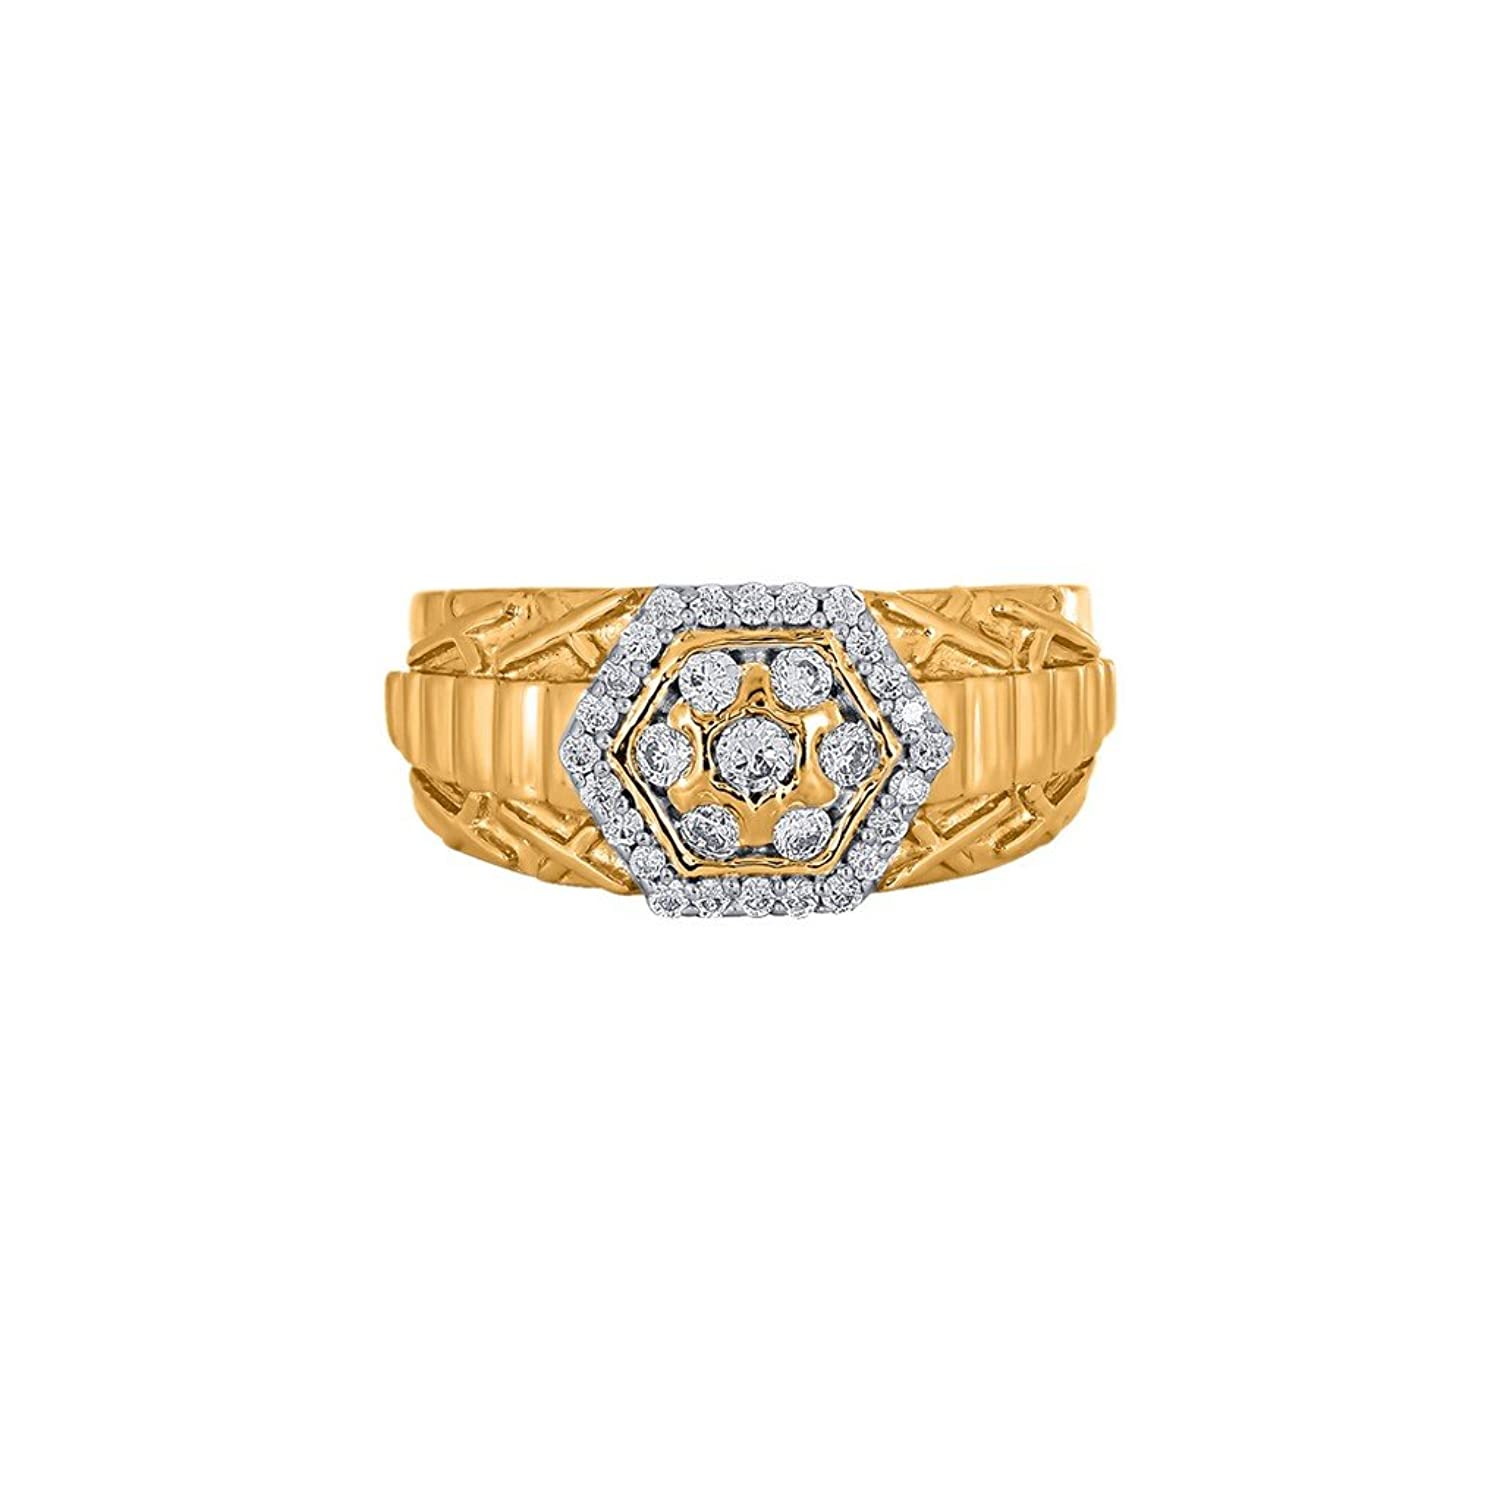 Menz by Gitanjali 14KT Yellow Gold and Diamond Ring for Men ...